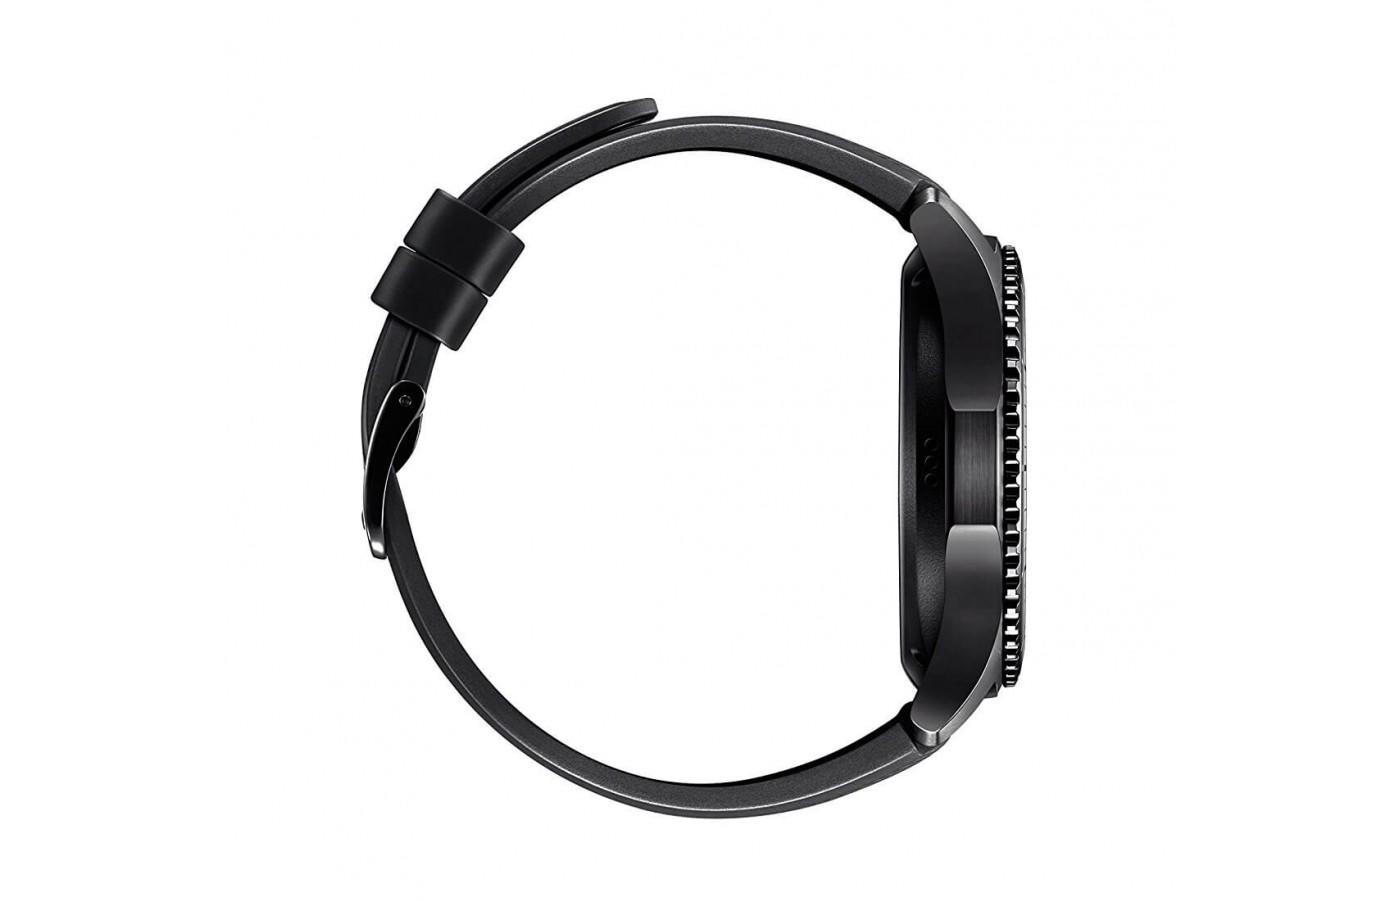 the Samsung Gear S3 Frontier has a built in GPS